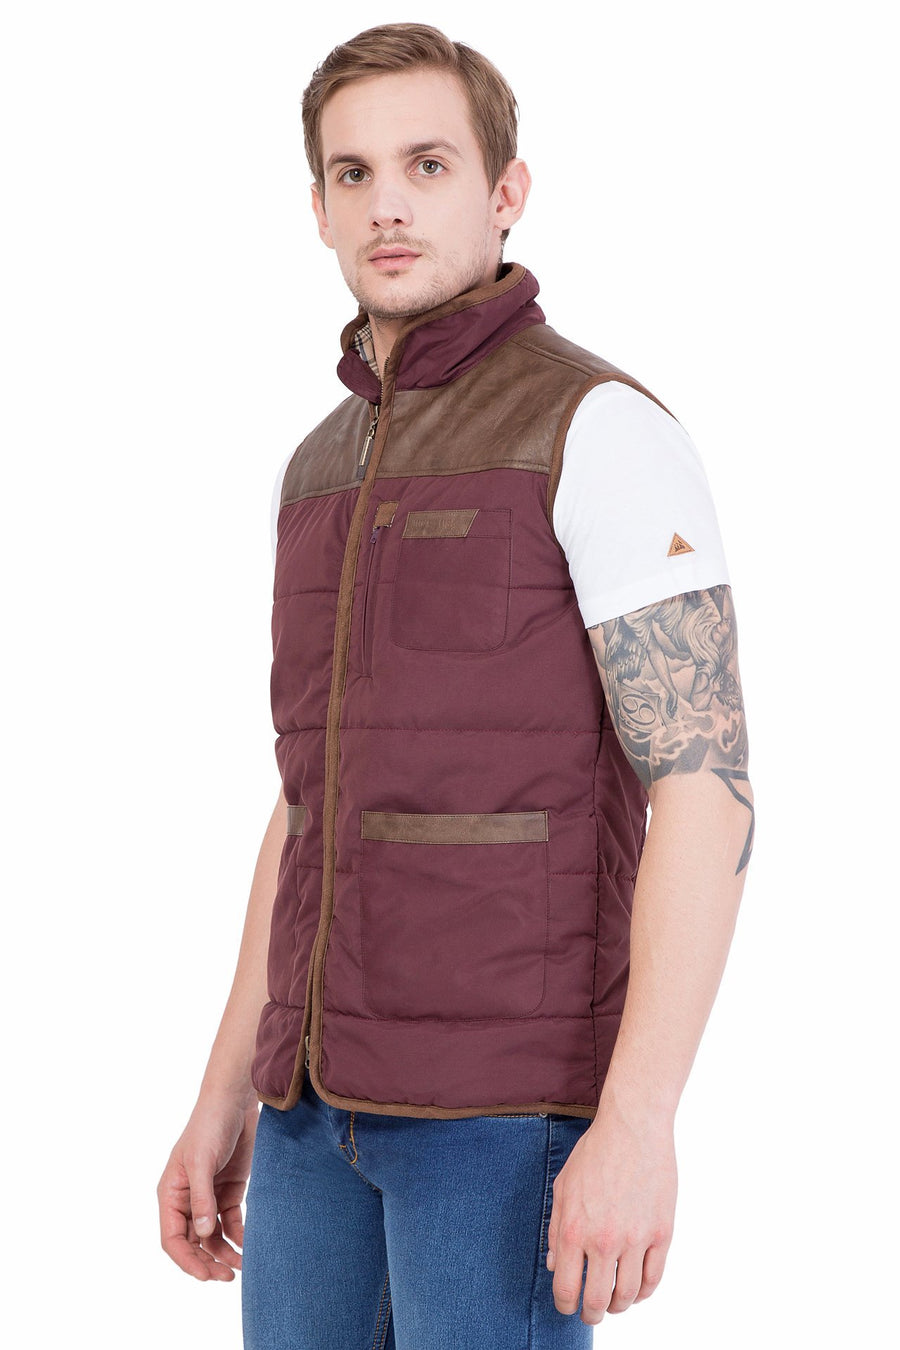 Men's Half Sleeve Zipper Jacket